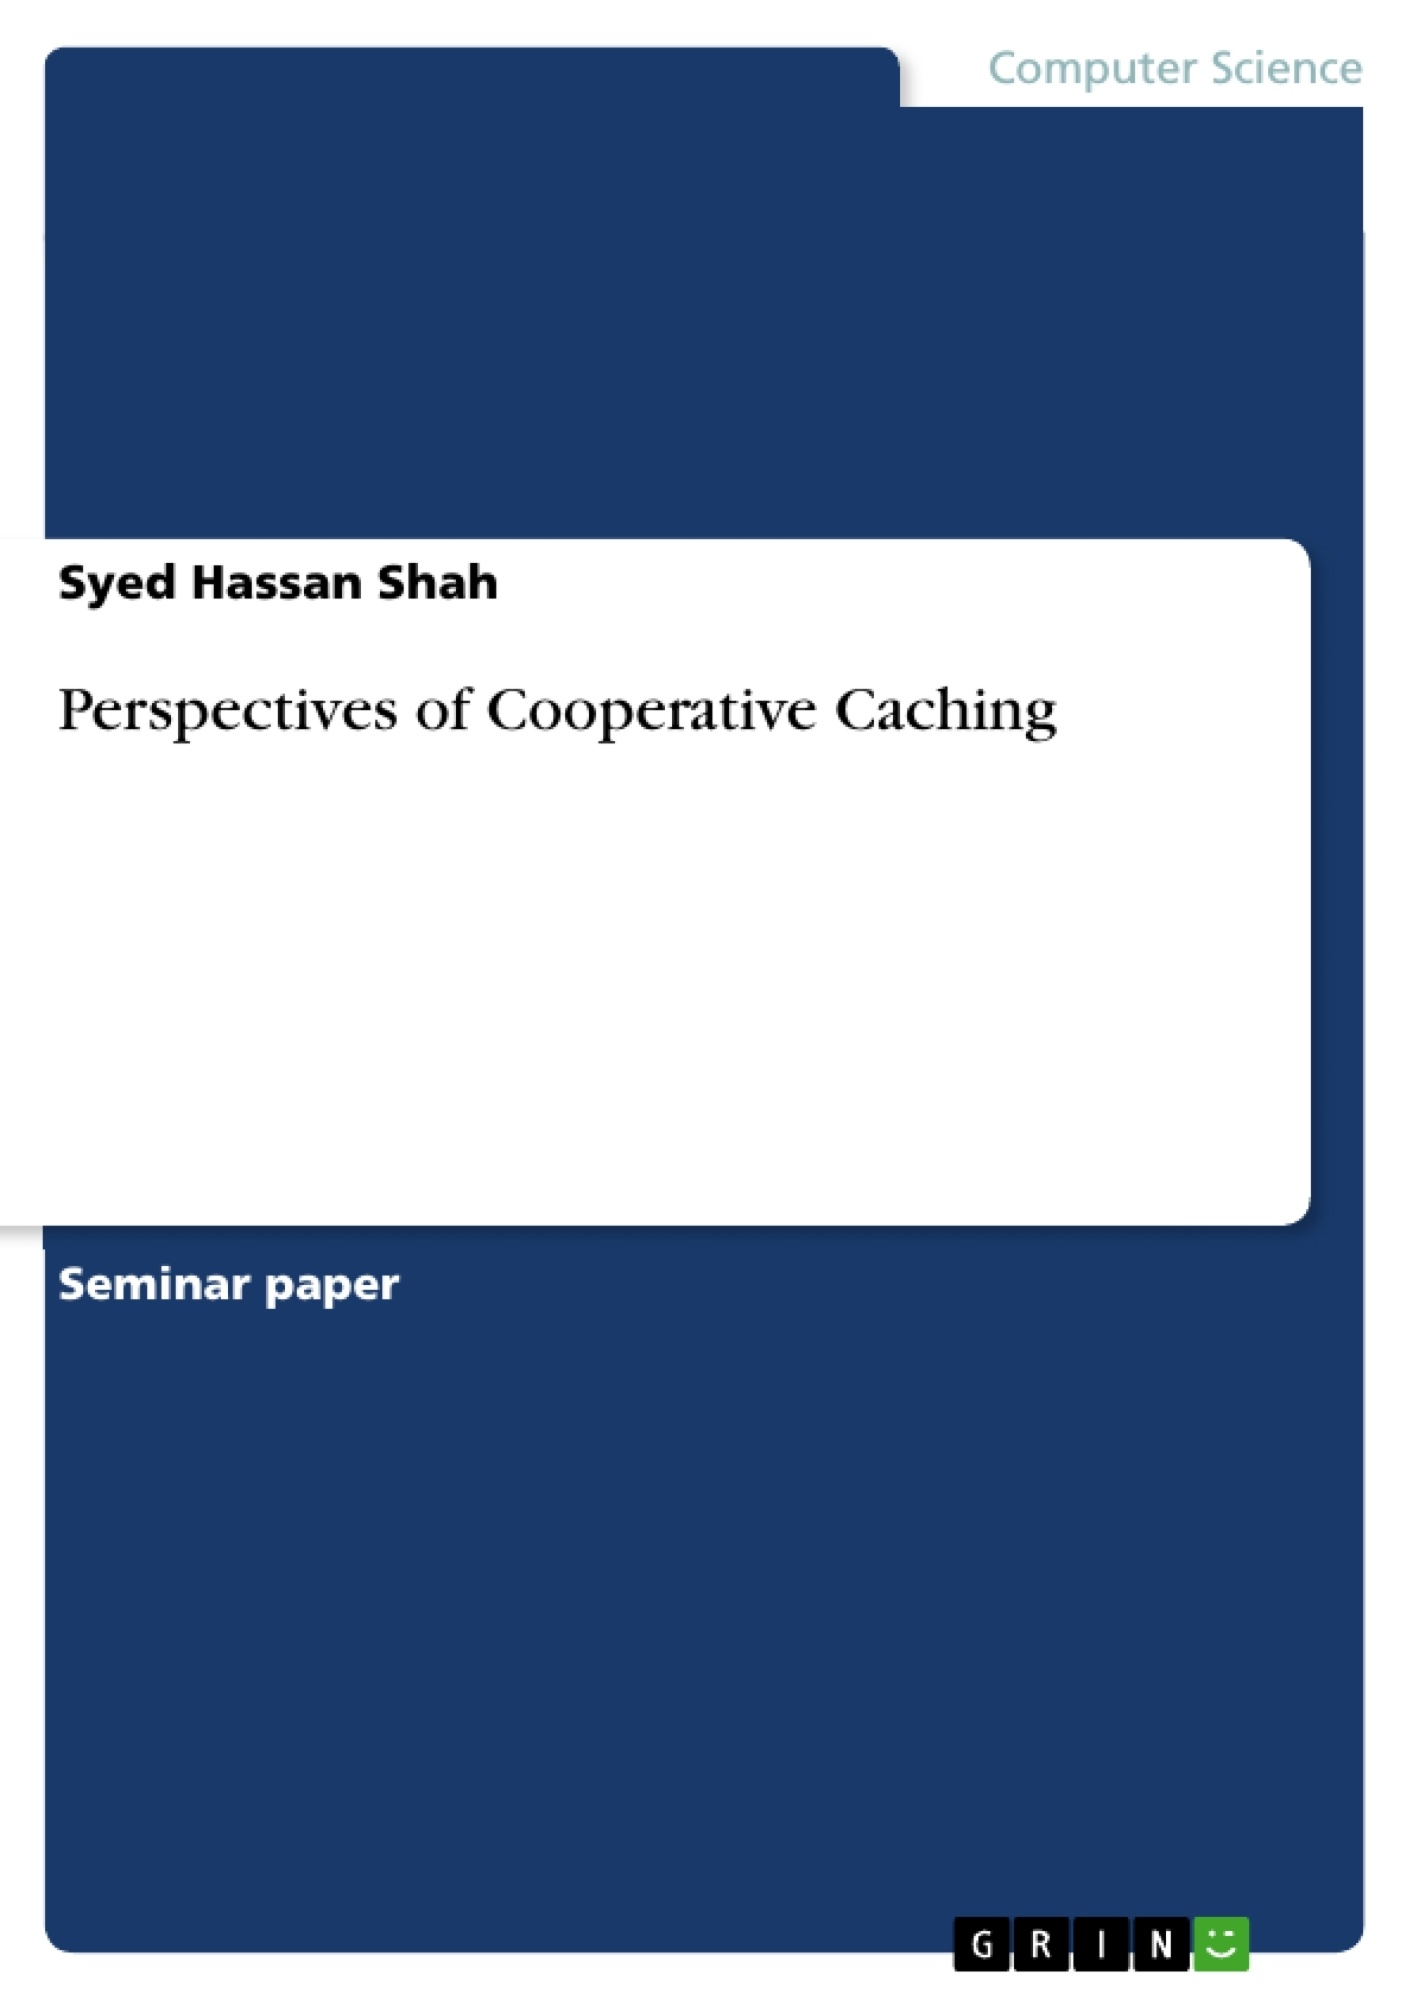 Title: Perspectives of Cooperative Caching